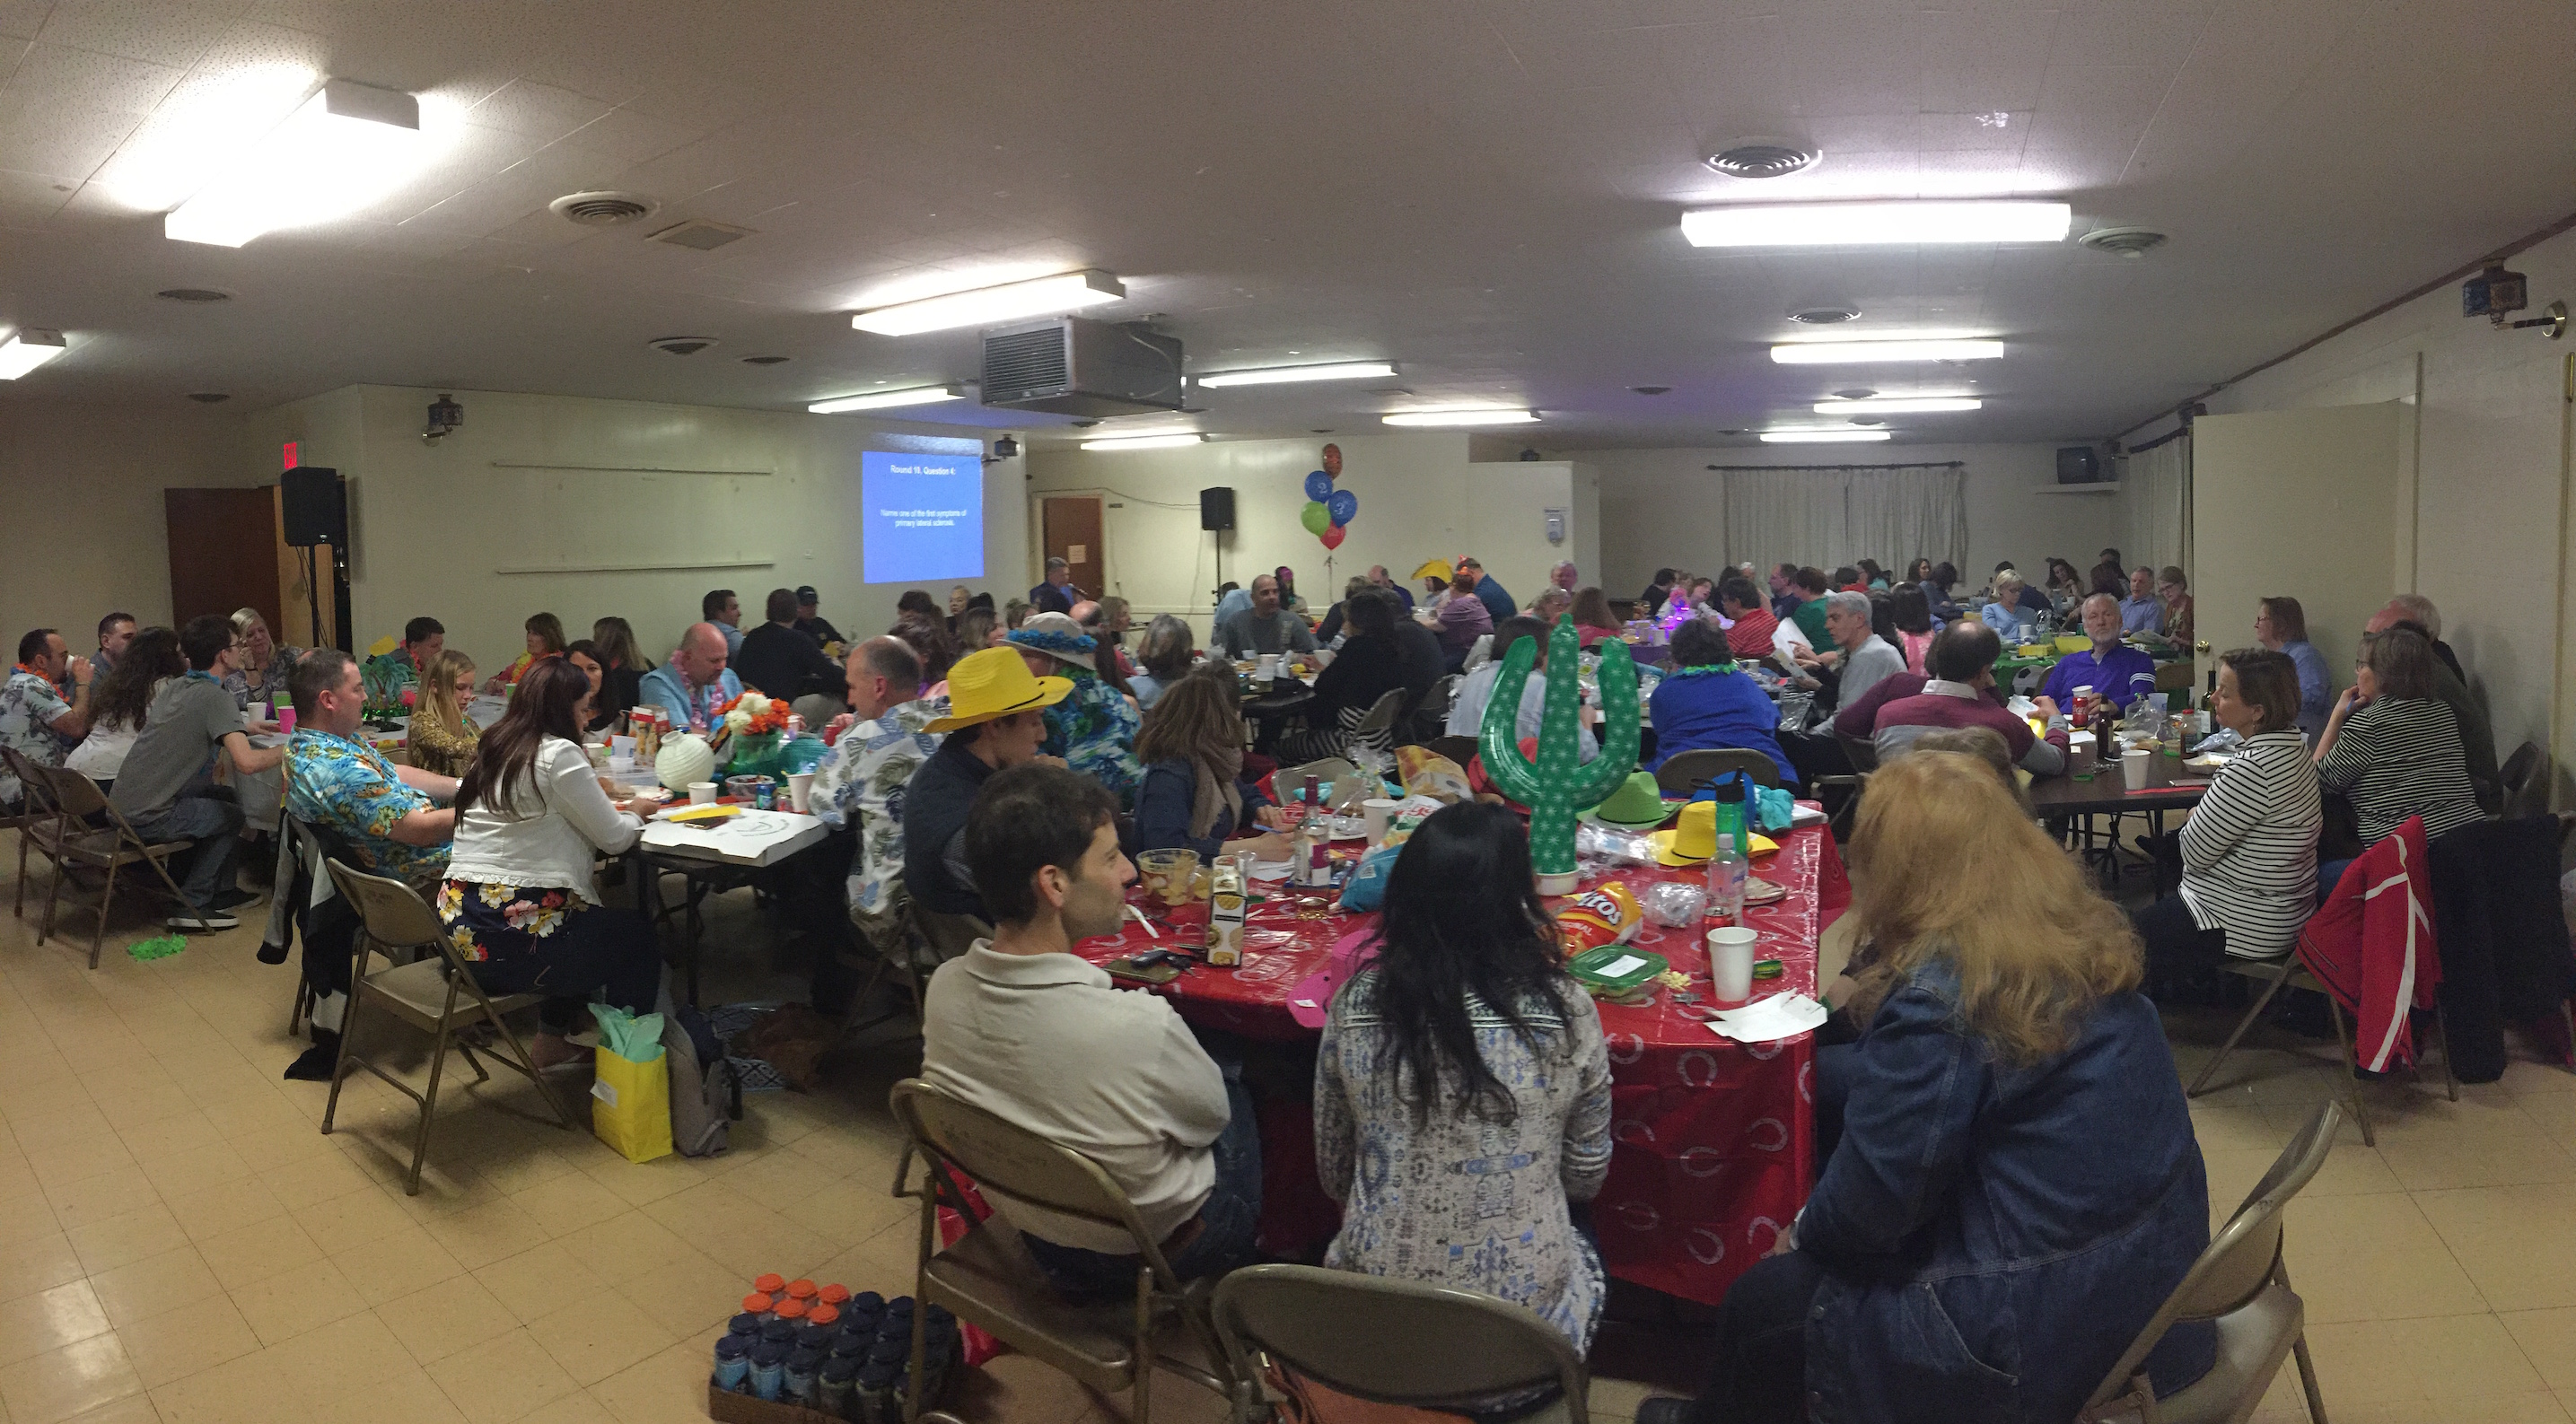 Tina & Tim Croghan & Mary Schultz's 3rd Annual Trivia Night is a Huge Success